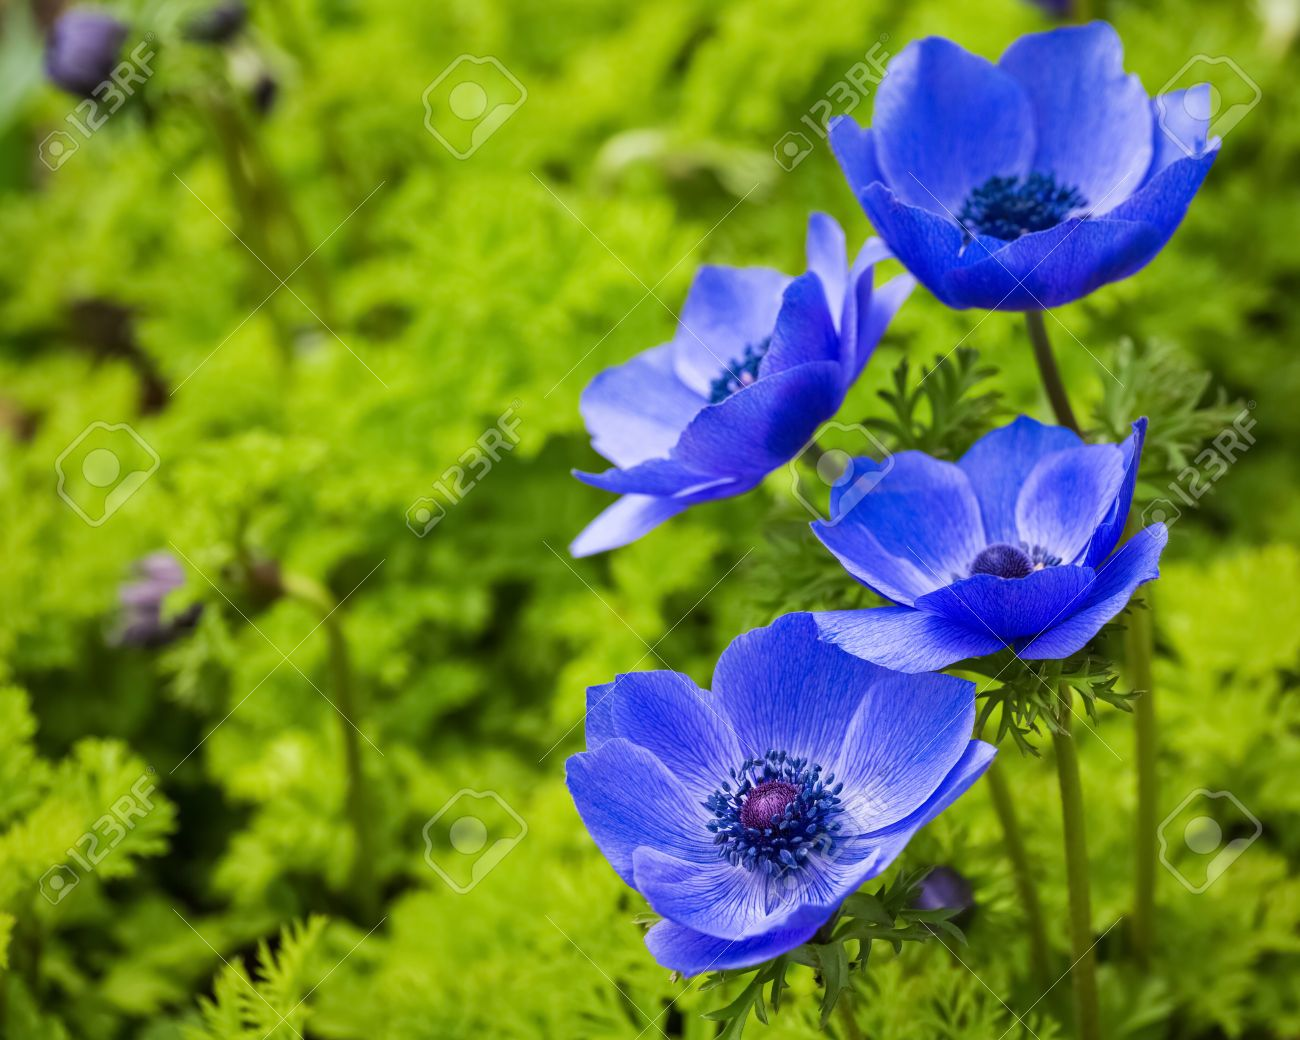 Beautiful Anemone Flower Images Stock Pictures Royalty Free Bloom Blossom Beautiful Blooms